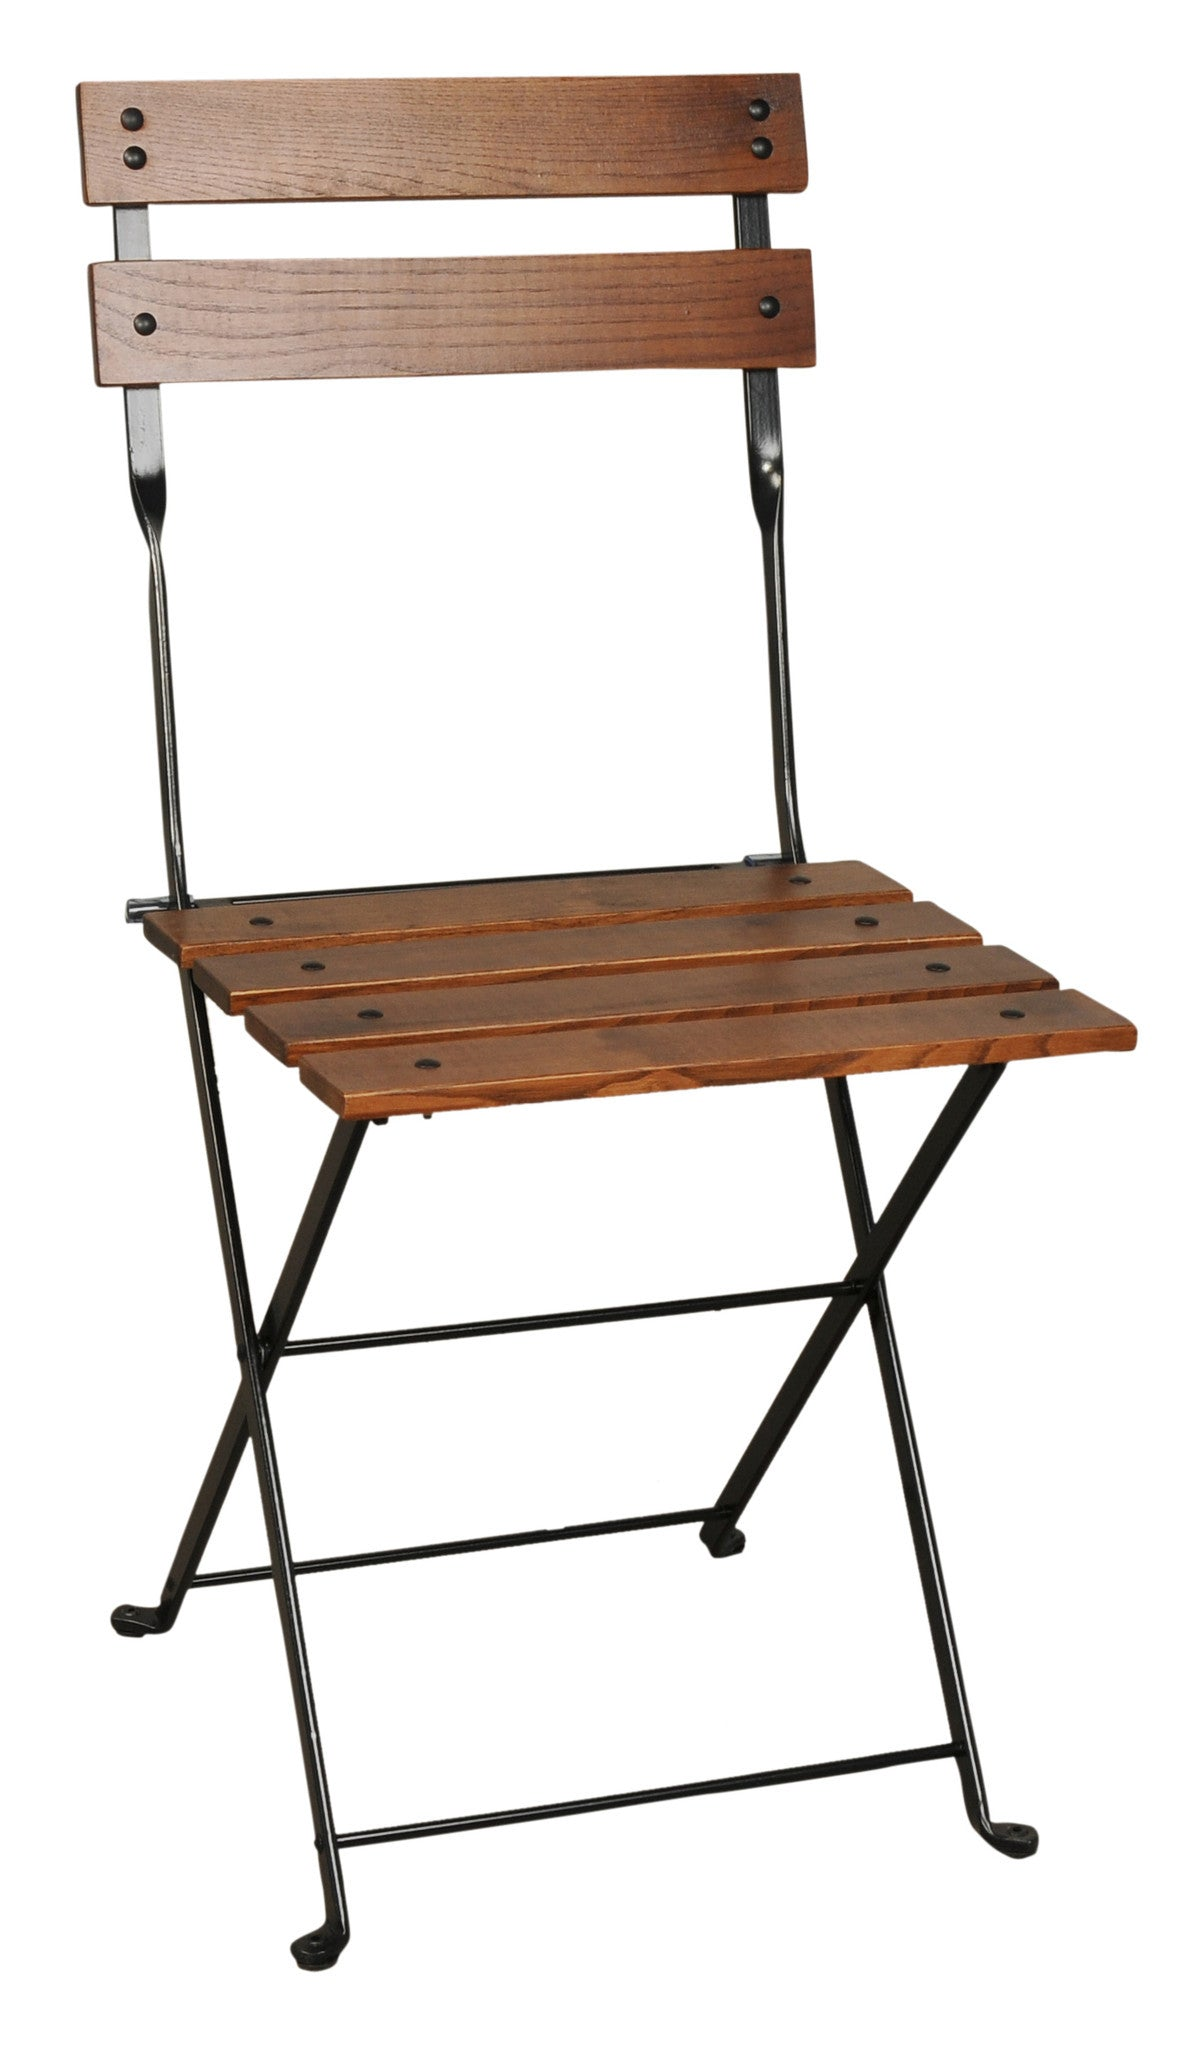 Buy French Caf Bistro Folding Side Chair with Chestnut Wood Slats